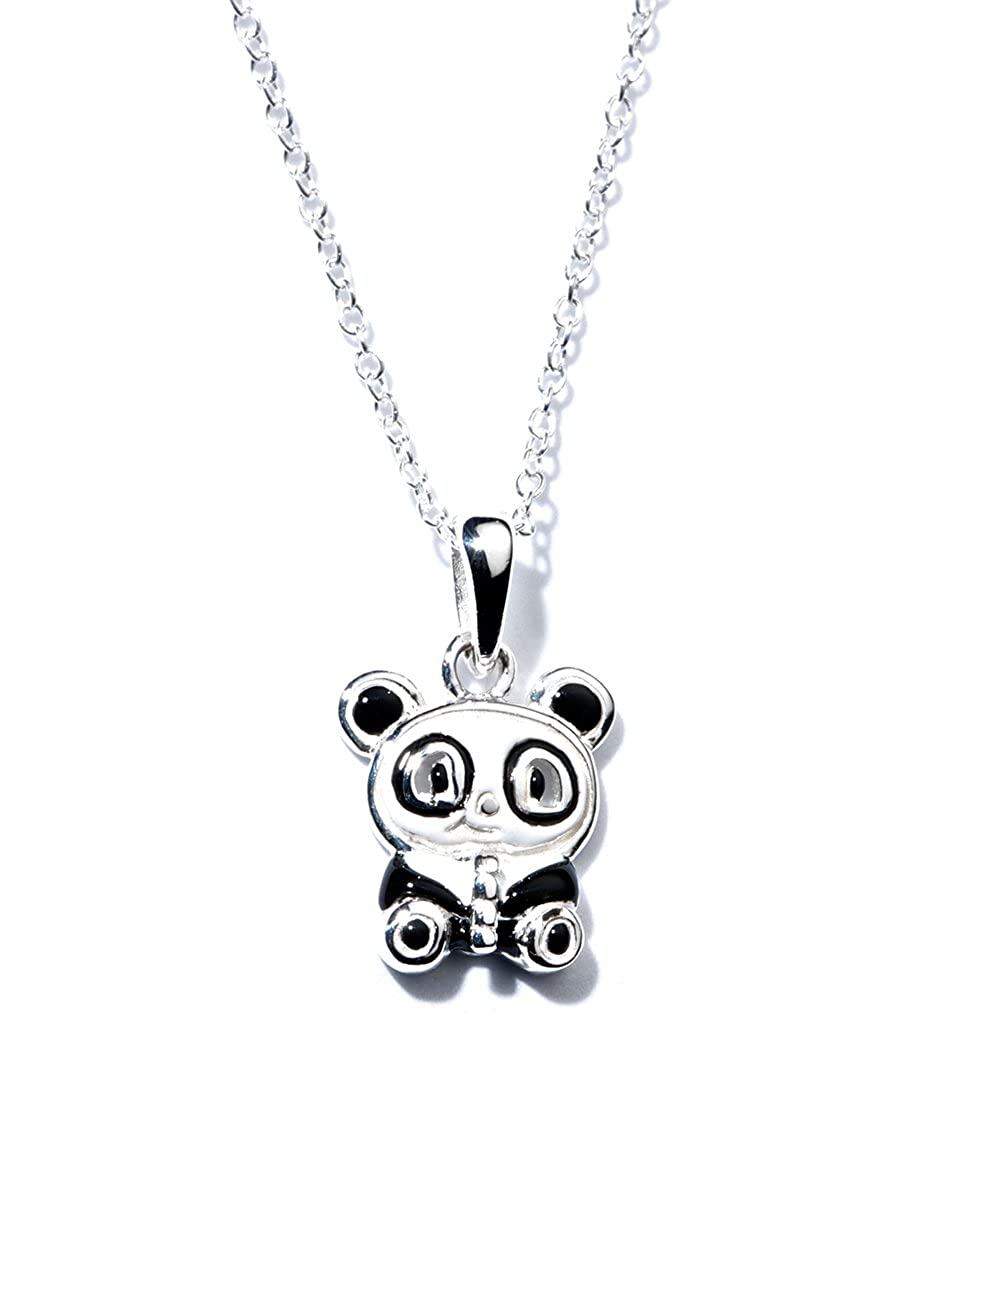 Jo for Girls Halskette Sterling-Silber mit Emaille-Panda-Anhä nger, 35,5  cm lang CP153